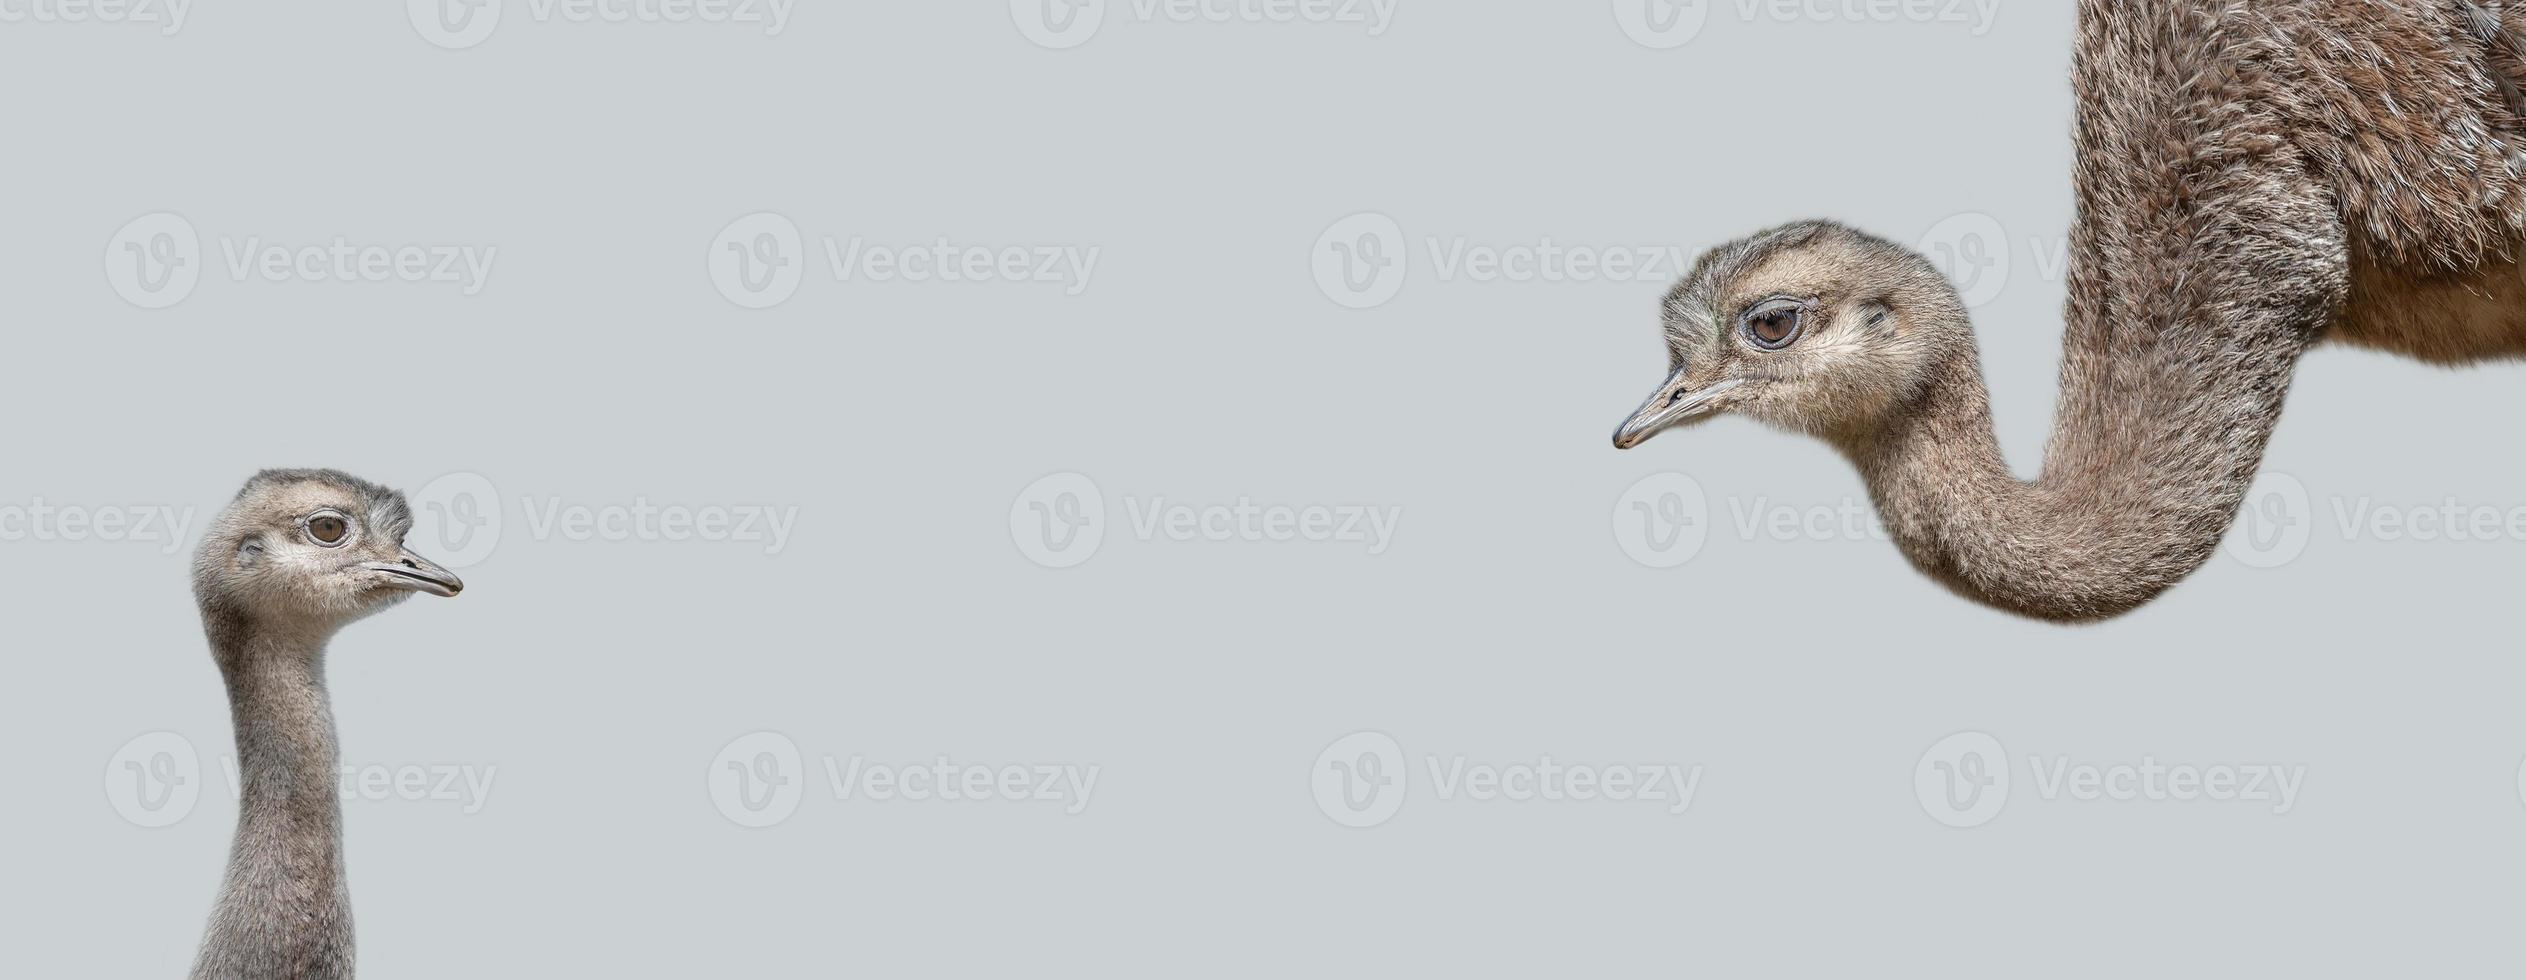 Banner with an ostrich mother with her cute and curious chick at solid grey background with copy space. Concept of biodiversity and wildlife conservation. photo